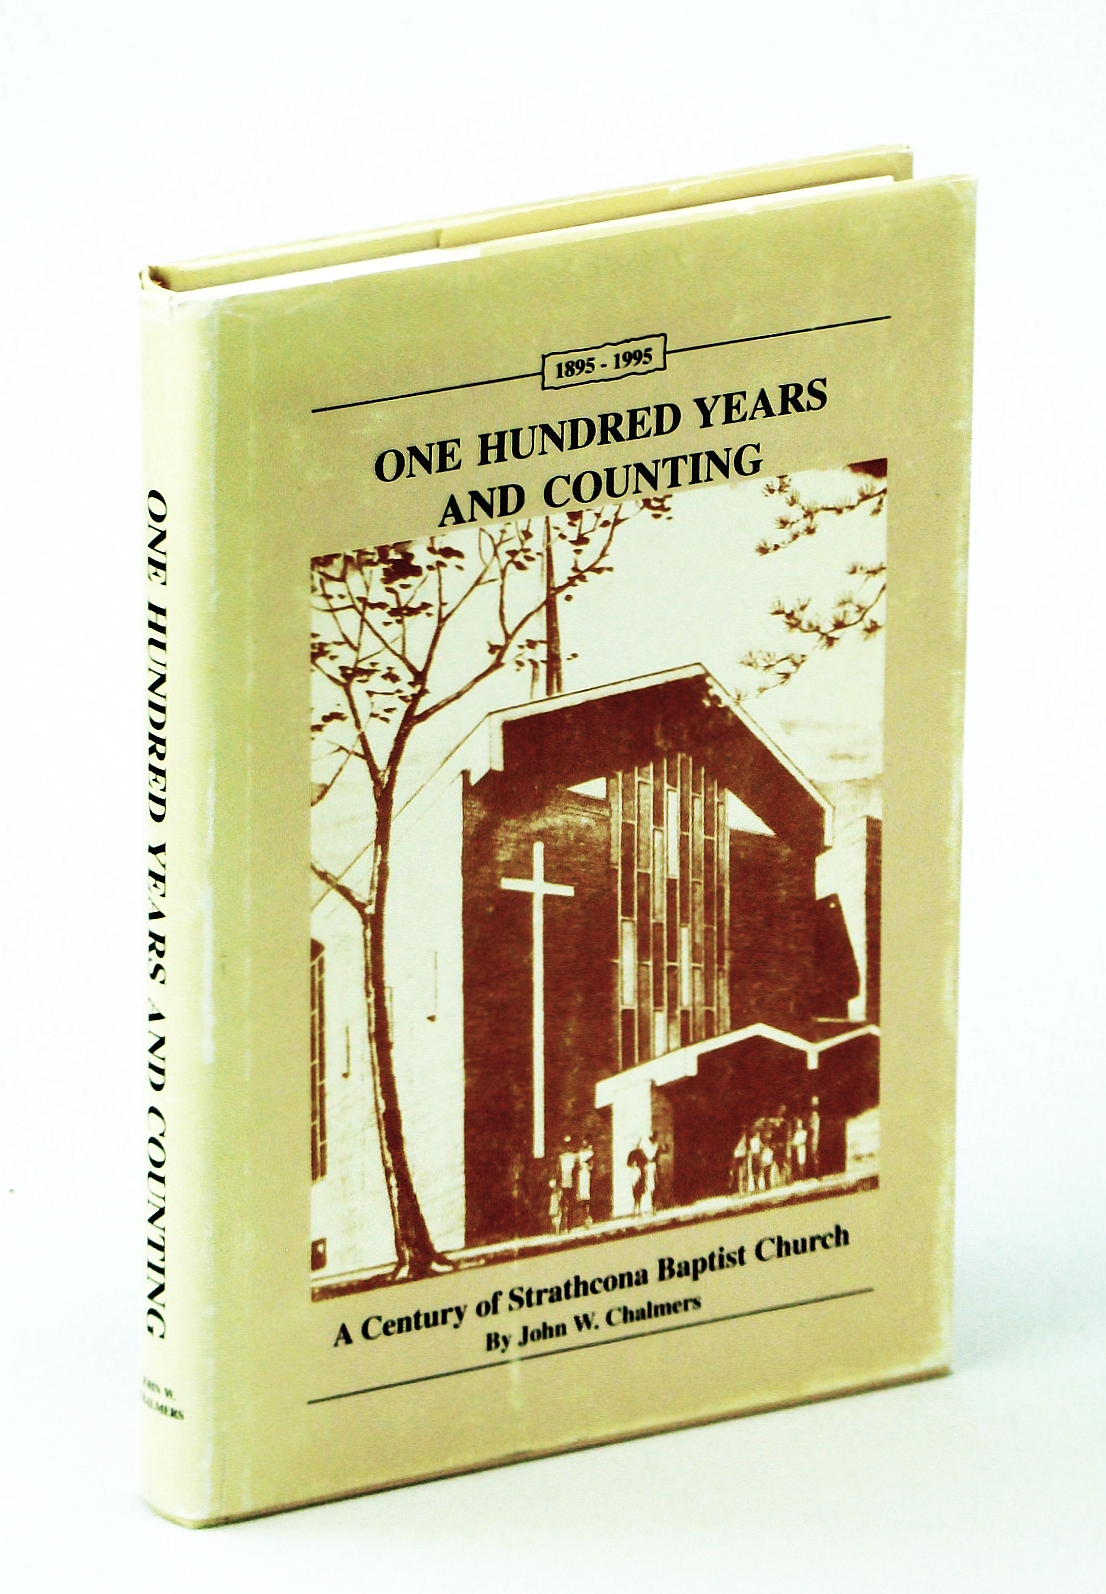 Image for One Hundred Years and Counting : A Century of Strathcona Baptist Church, 1895-1995